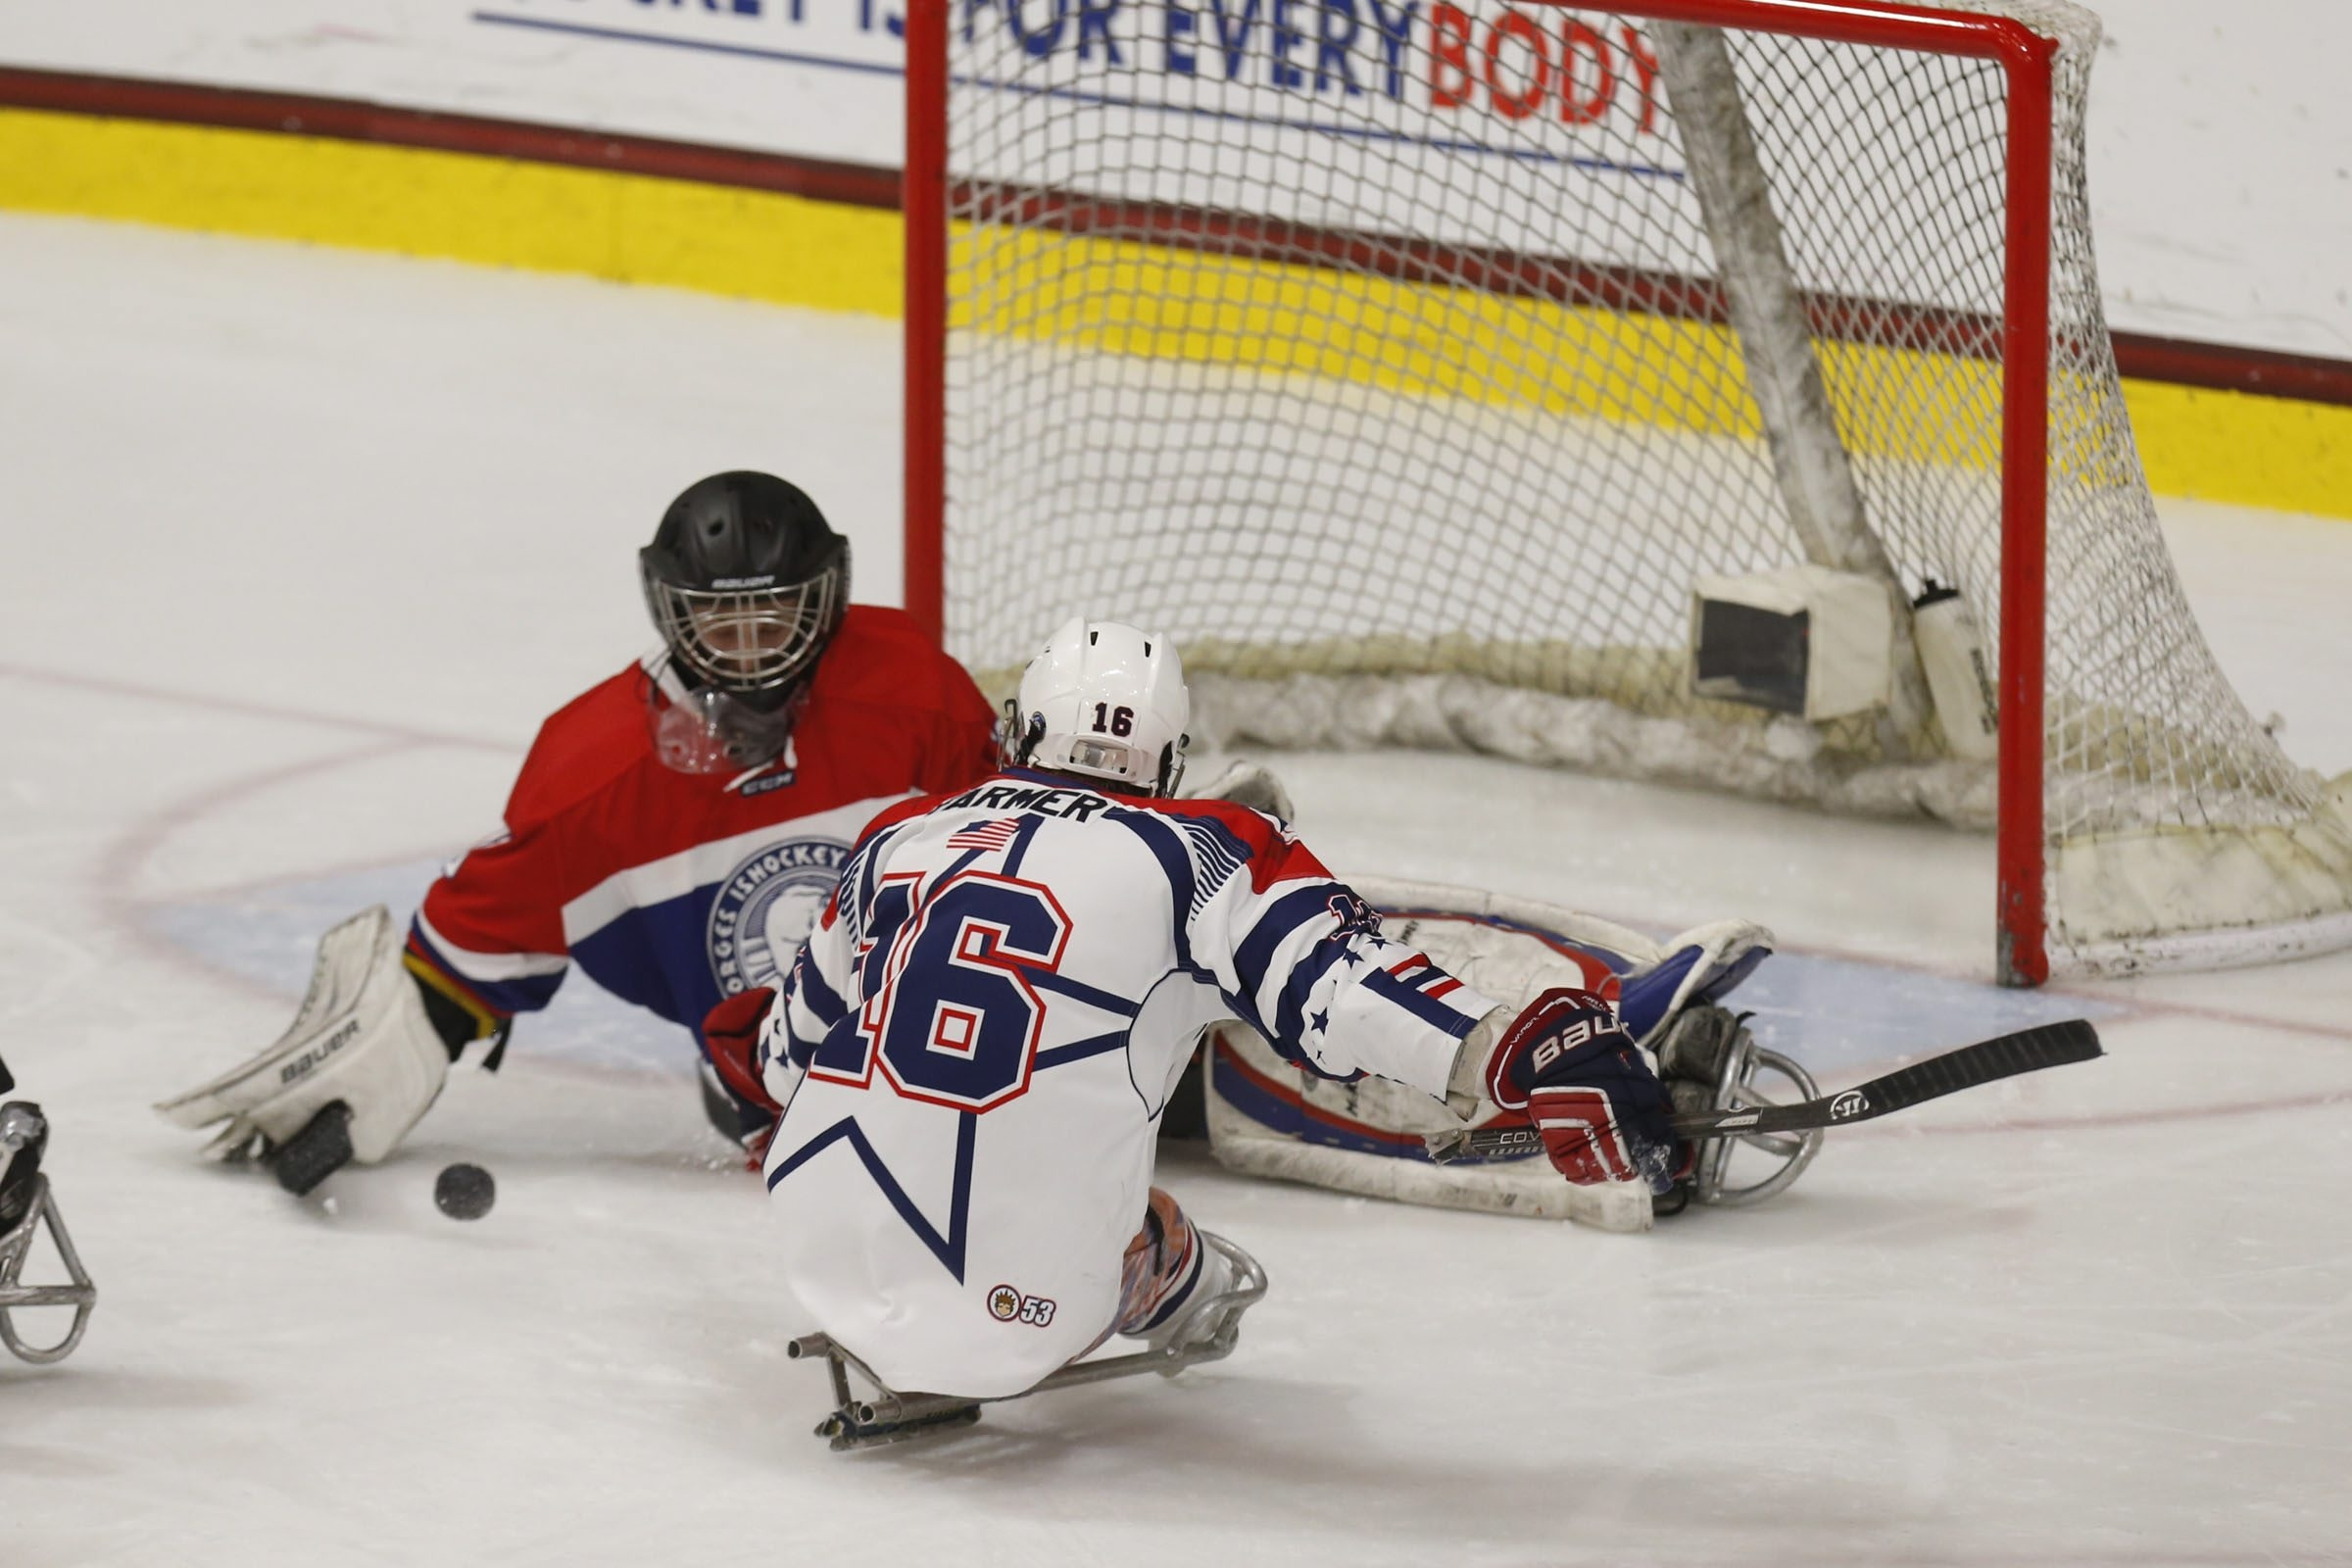 USA's Declan Farmer scores against Norway during the first period of their Sledge Hockey World Championships semifinal.